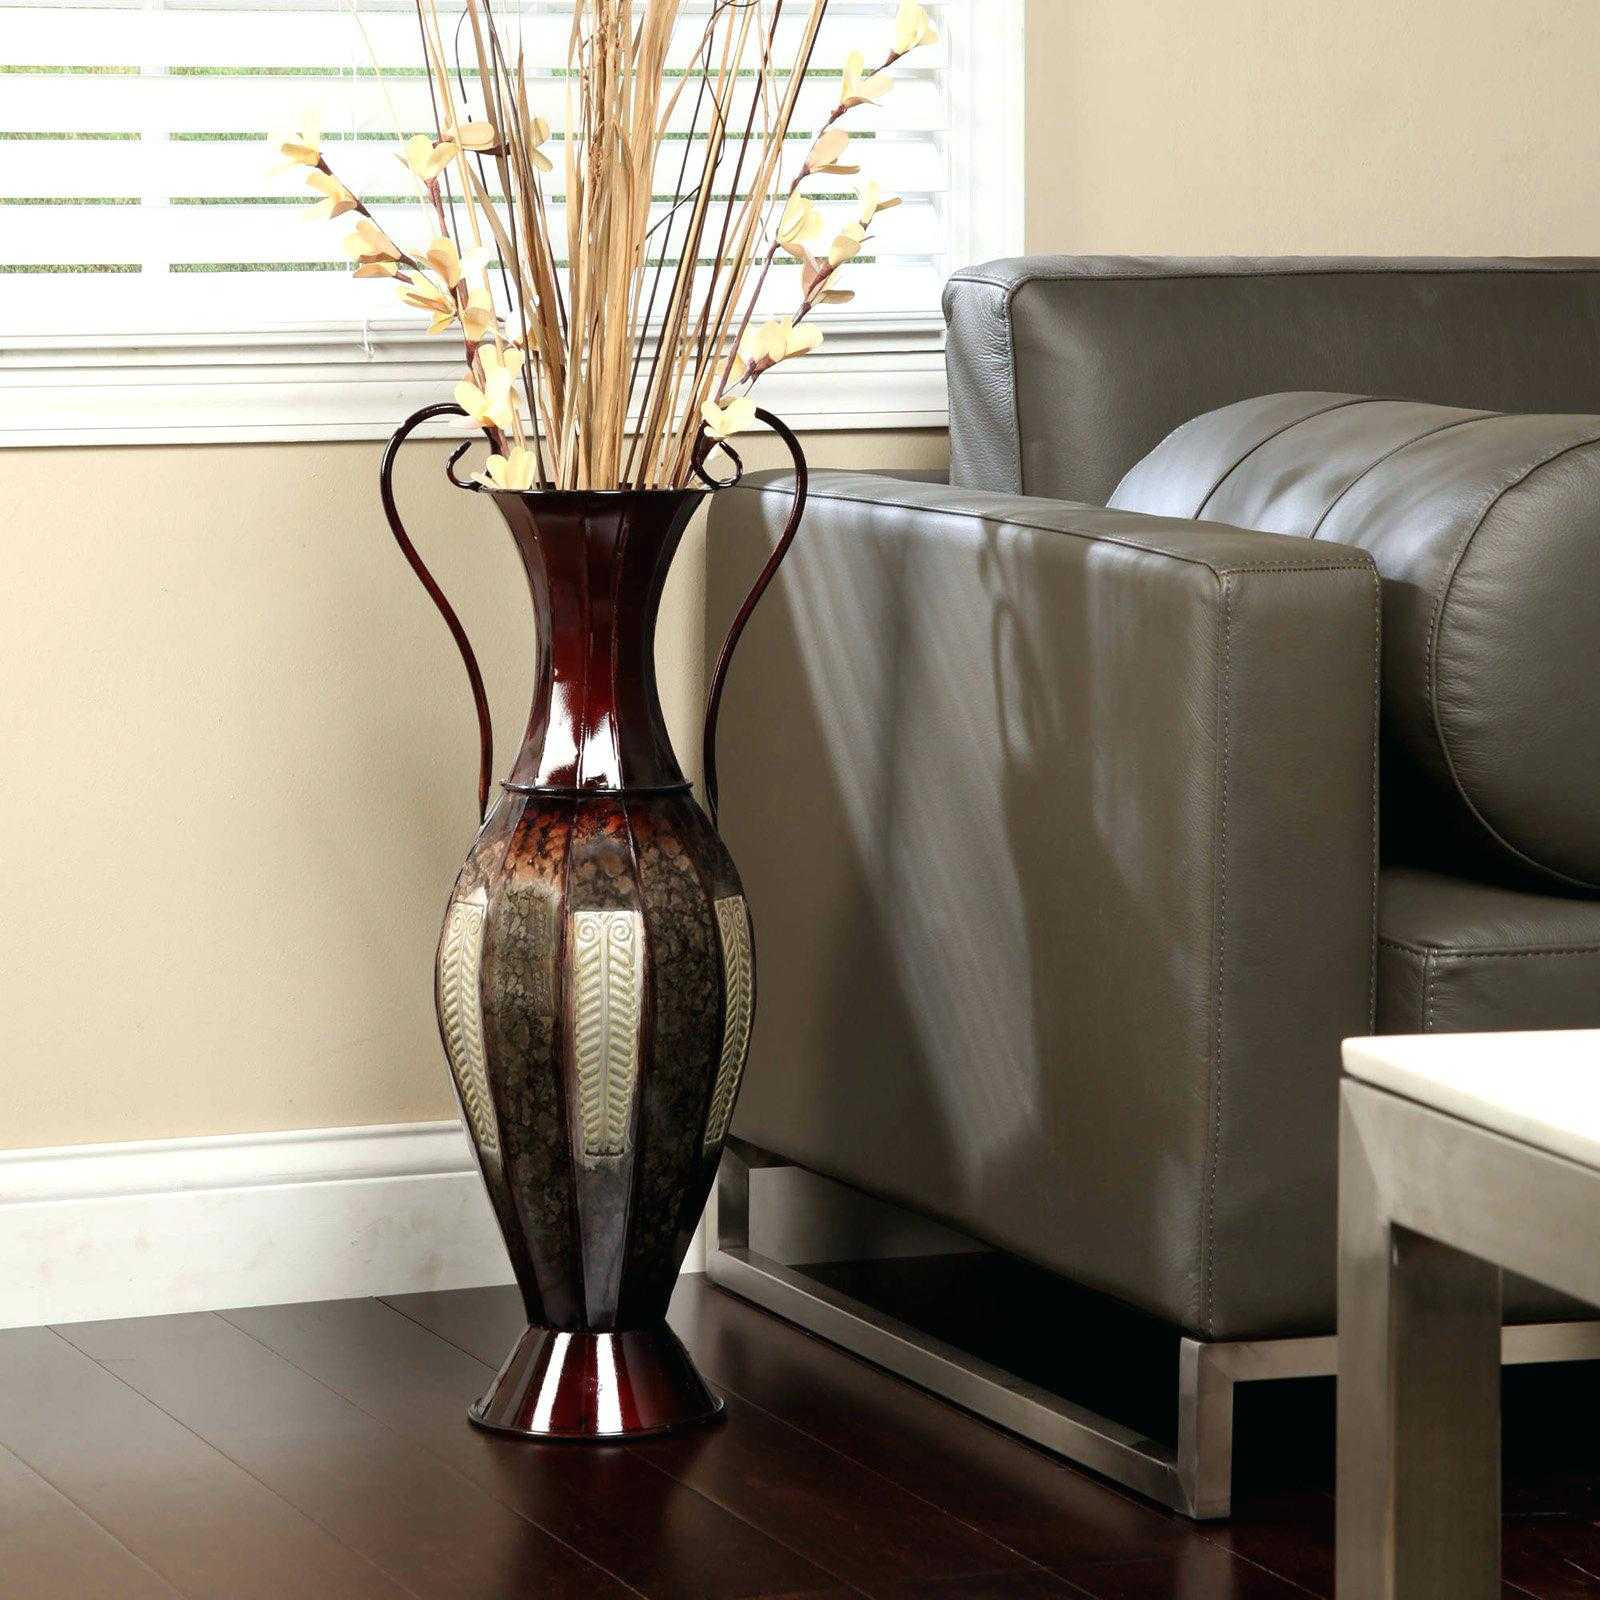 living room vase of decorating ideas at your living rooms with phenomenal big vases for throughout decorating ideas at your living rooms with phenomenal big vases for living room modern home design ideas house workh i 0d plus brown living room ideas